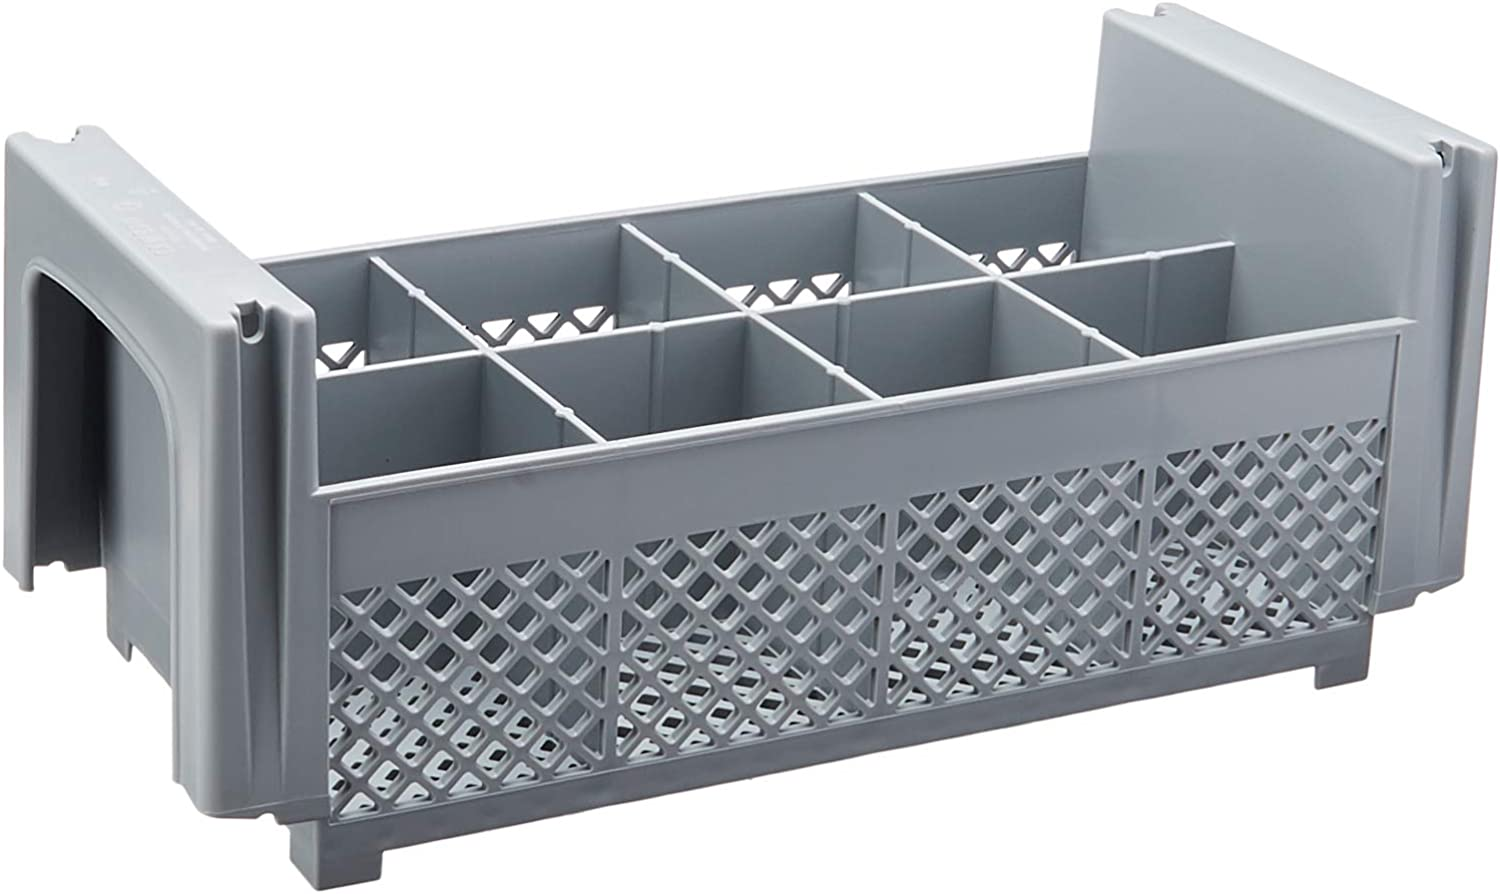 Cambro 8FBNH434151 8-Compartment Flatware Rack, Gray, 1/2 Size